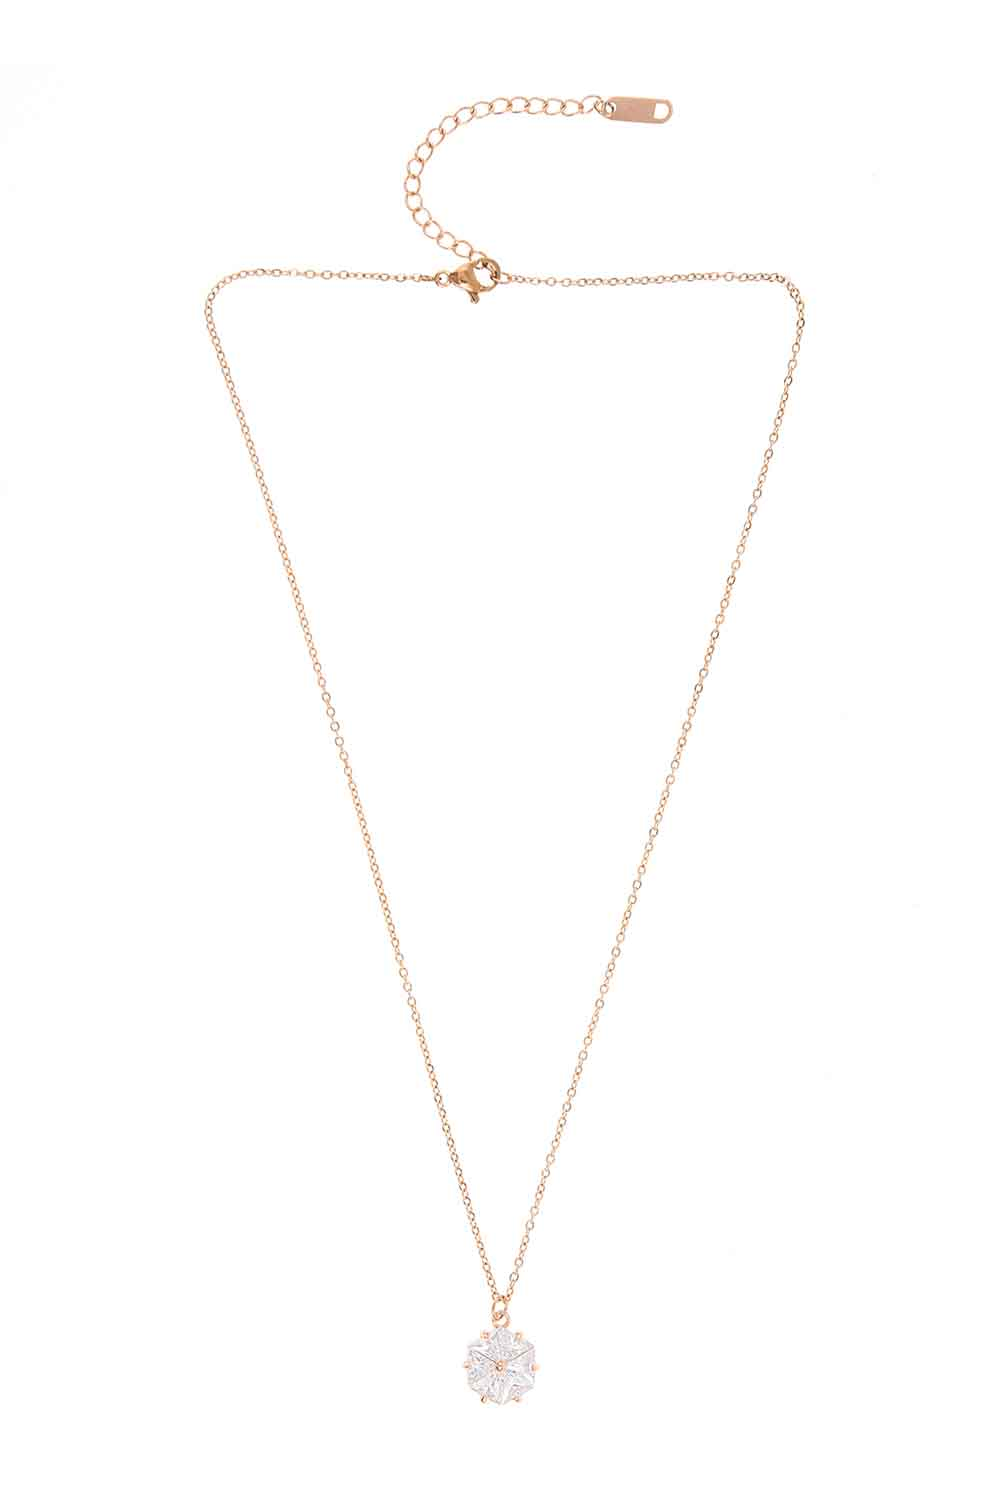 MIZALLE Flower Steel Necklace (St) (1)